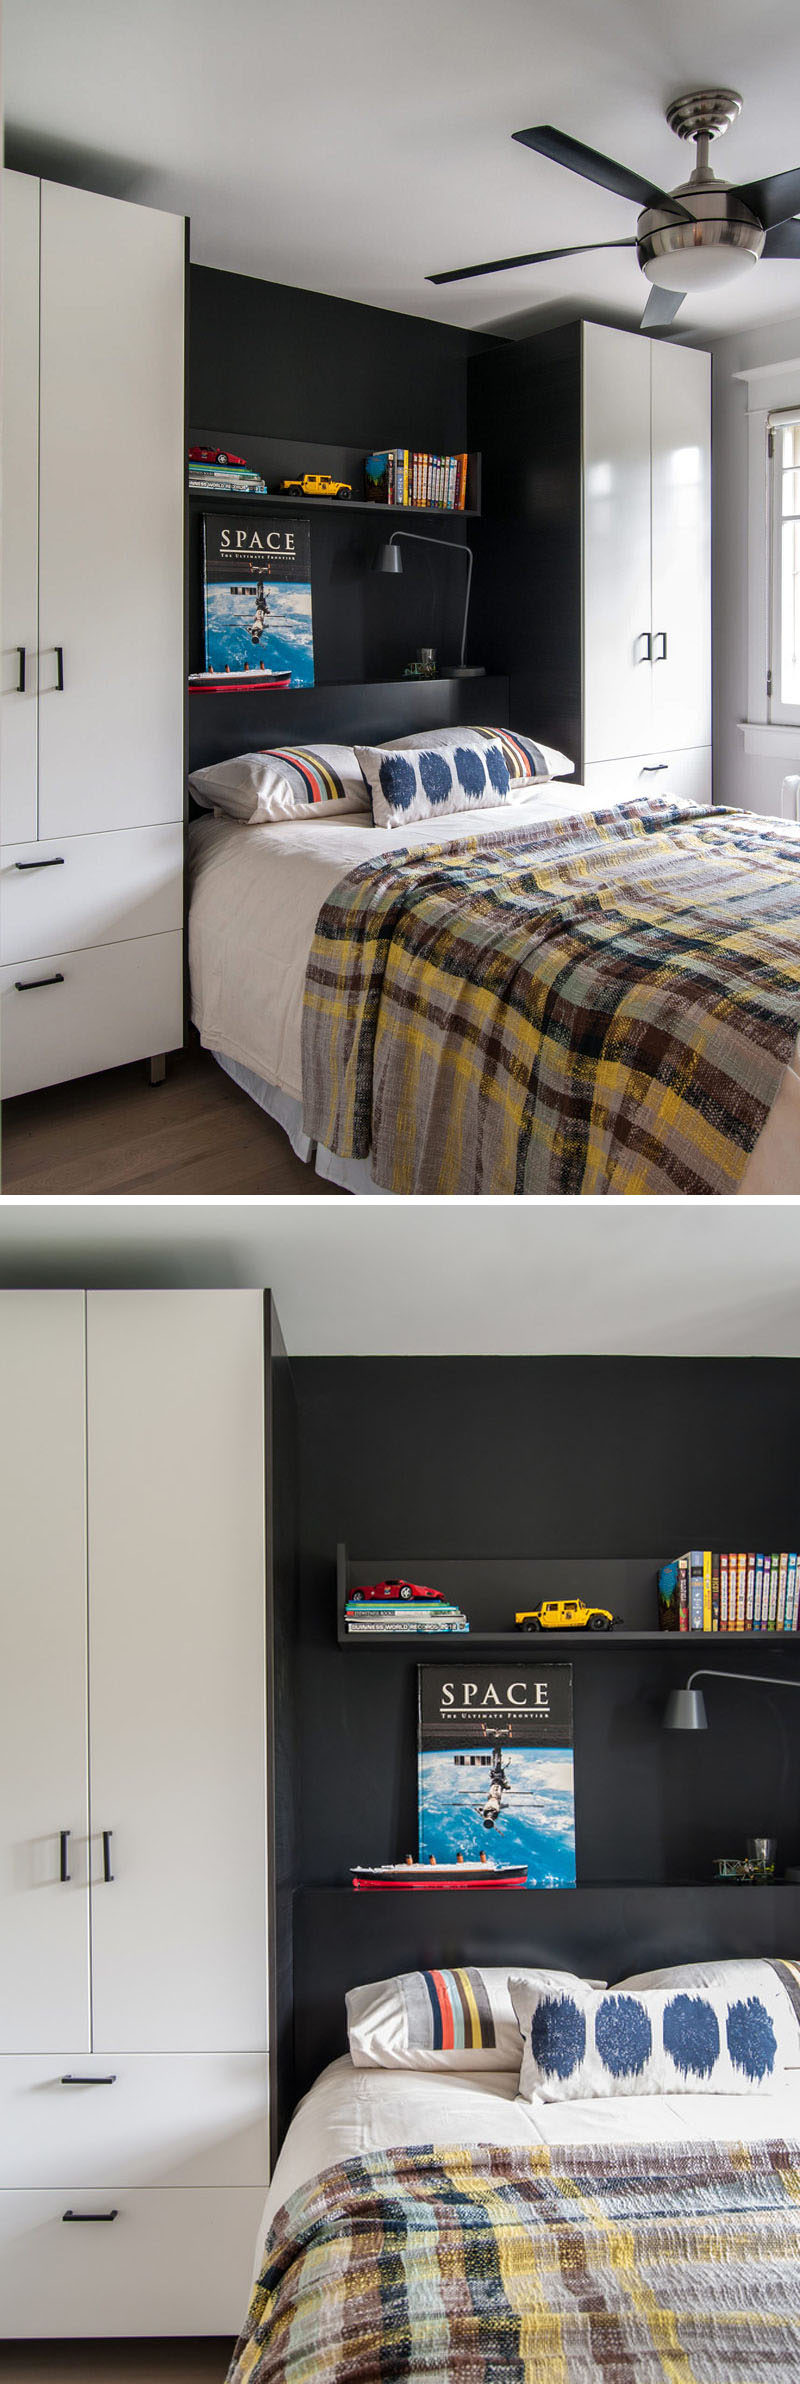 Bedroom Design Ideas - 8 Ways To Create The Ultimate Bed Surround With Storage // Define The Sleeping Area -- Use a bold color or a different material than what's been used on the rest cabinets sets your bed apart from the storage and adds color and texture to your room.